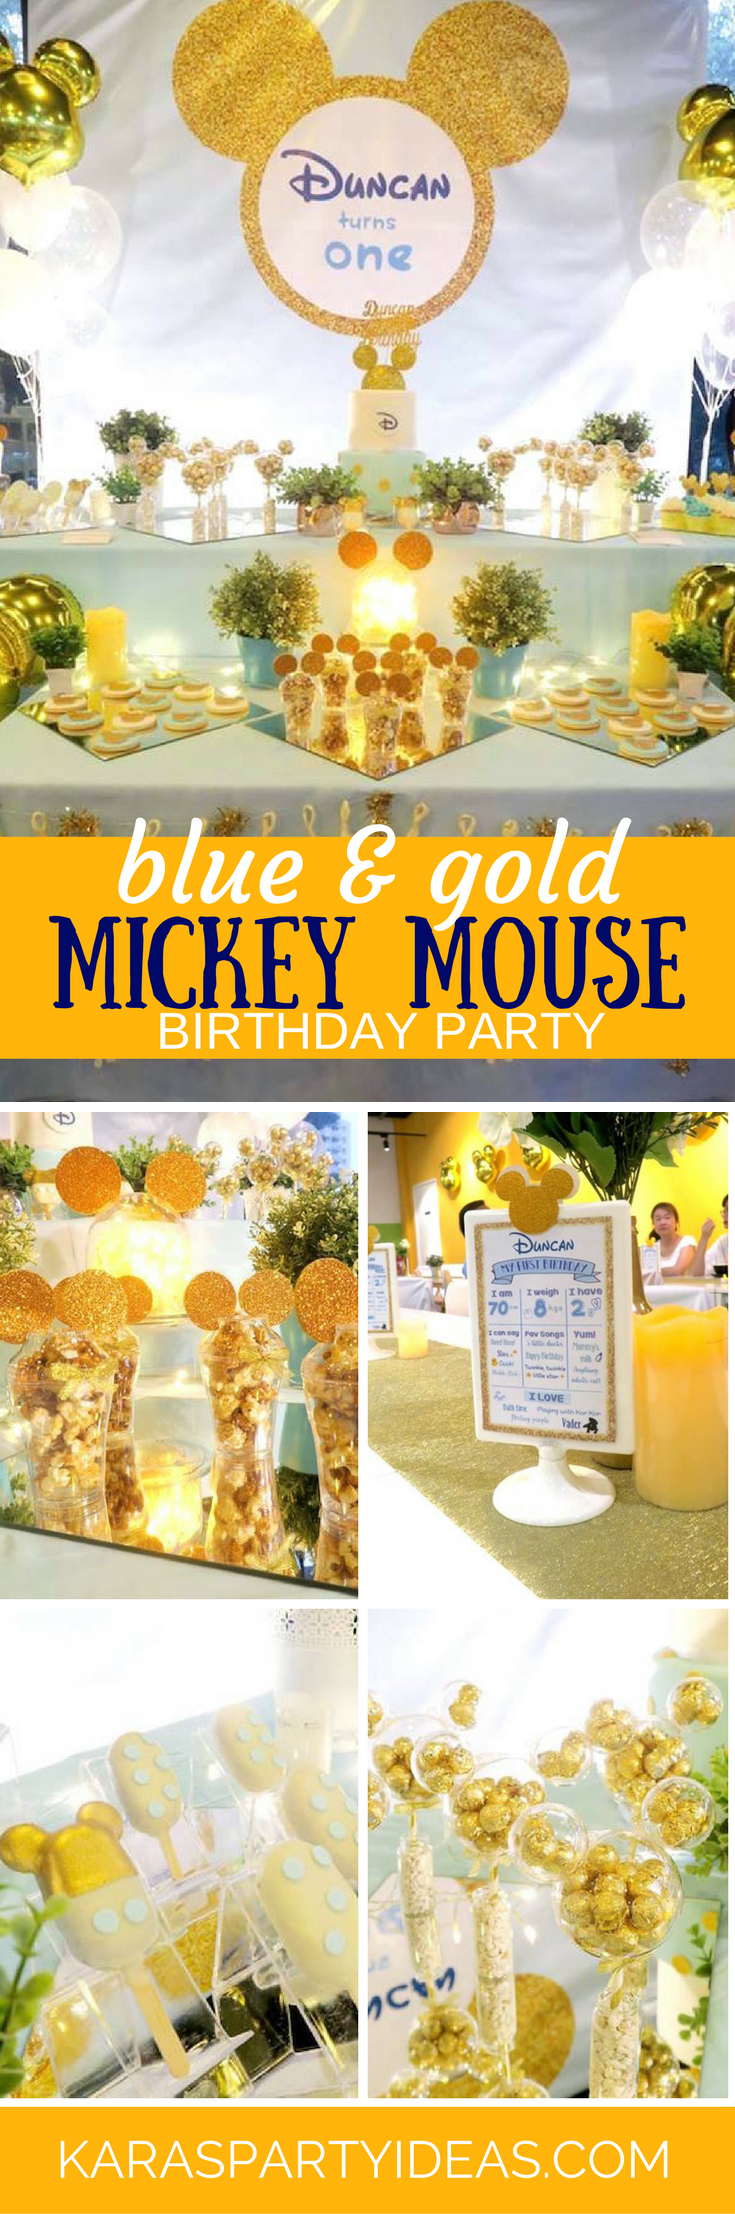 Kara s Party Ideas Blue & Gold Mickey Mouse Birthday Party